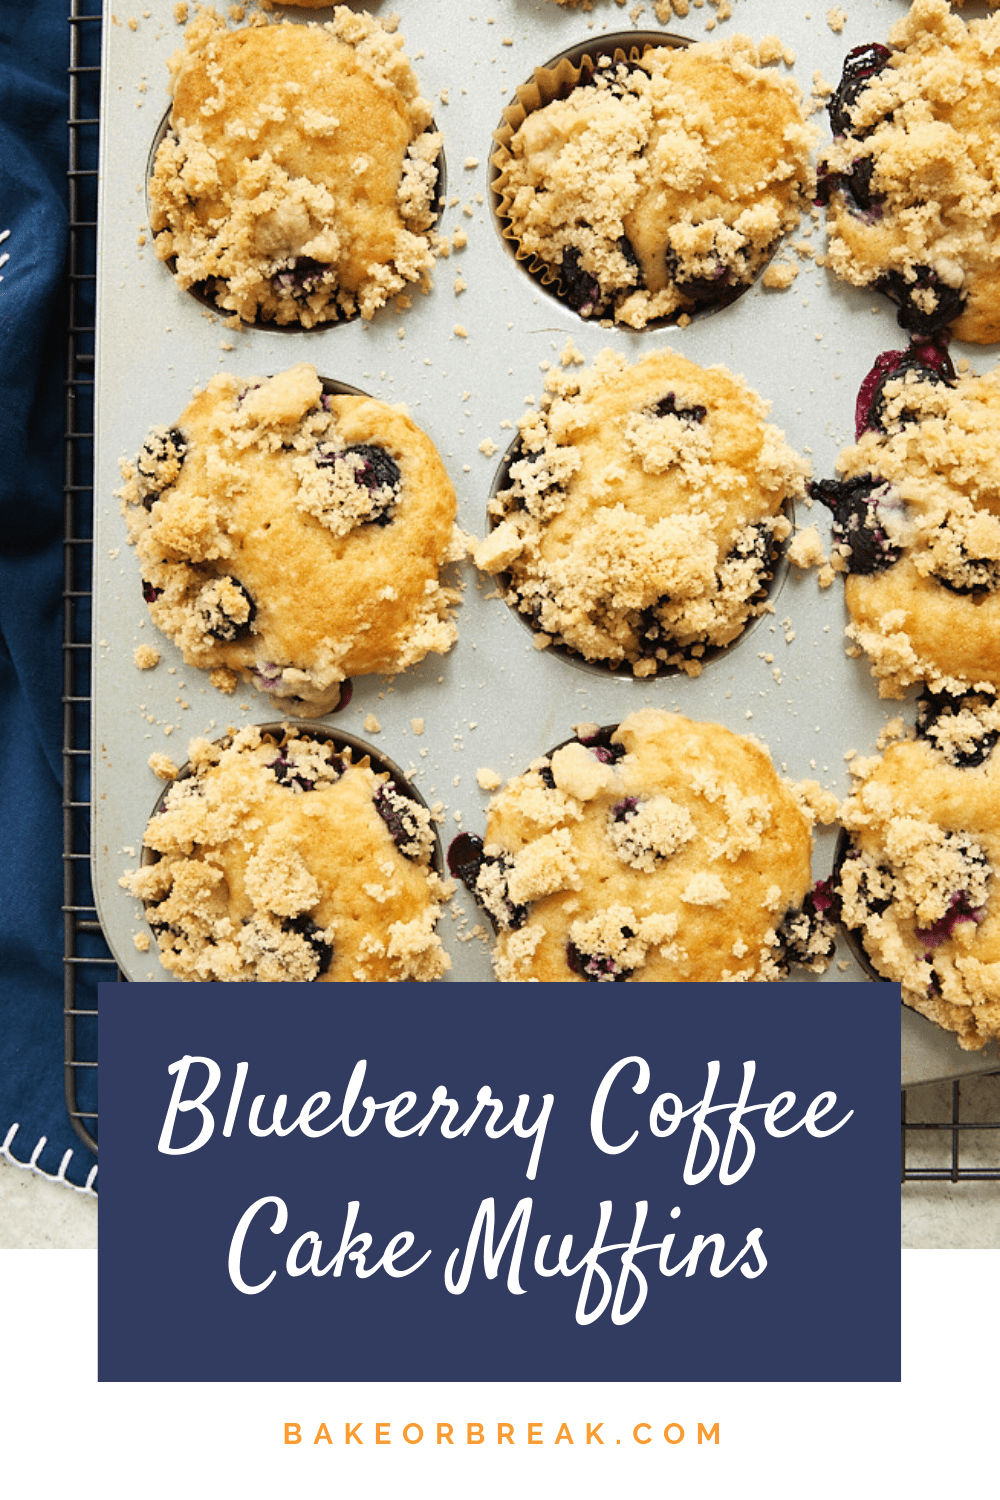 Blueberry Coffee Cake Muffins bakeorbreak.com